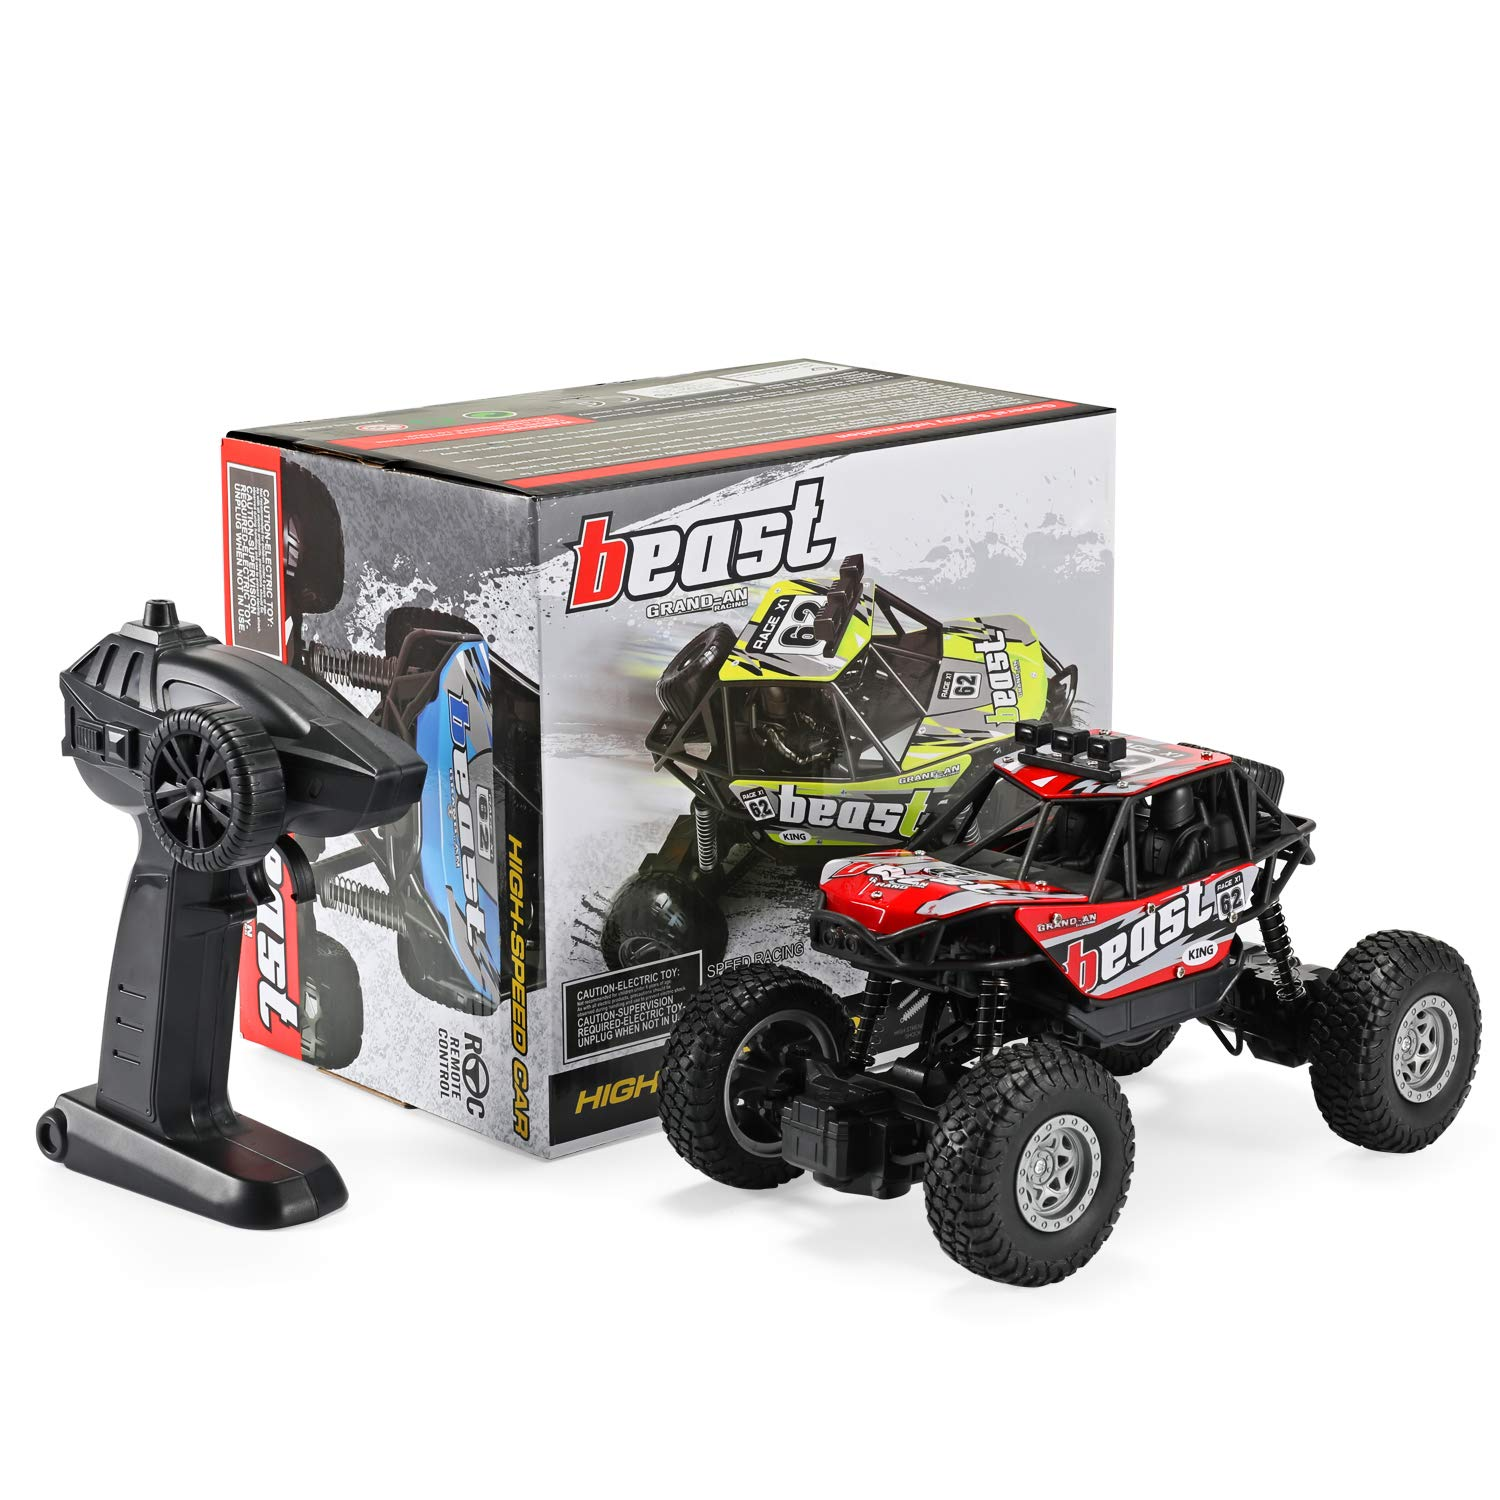 Dennov RC Truck Car Remote Control Truck Car Red 1//20 Scale Rechargeable RC Crawler Toy Car for Adults /& Kids